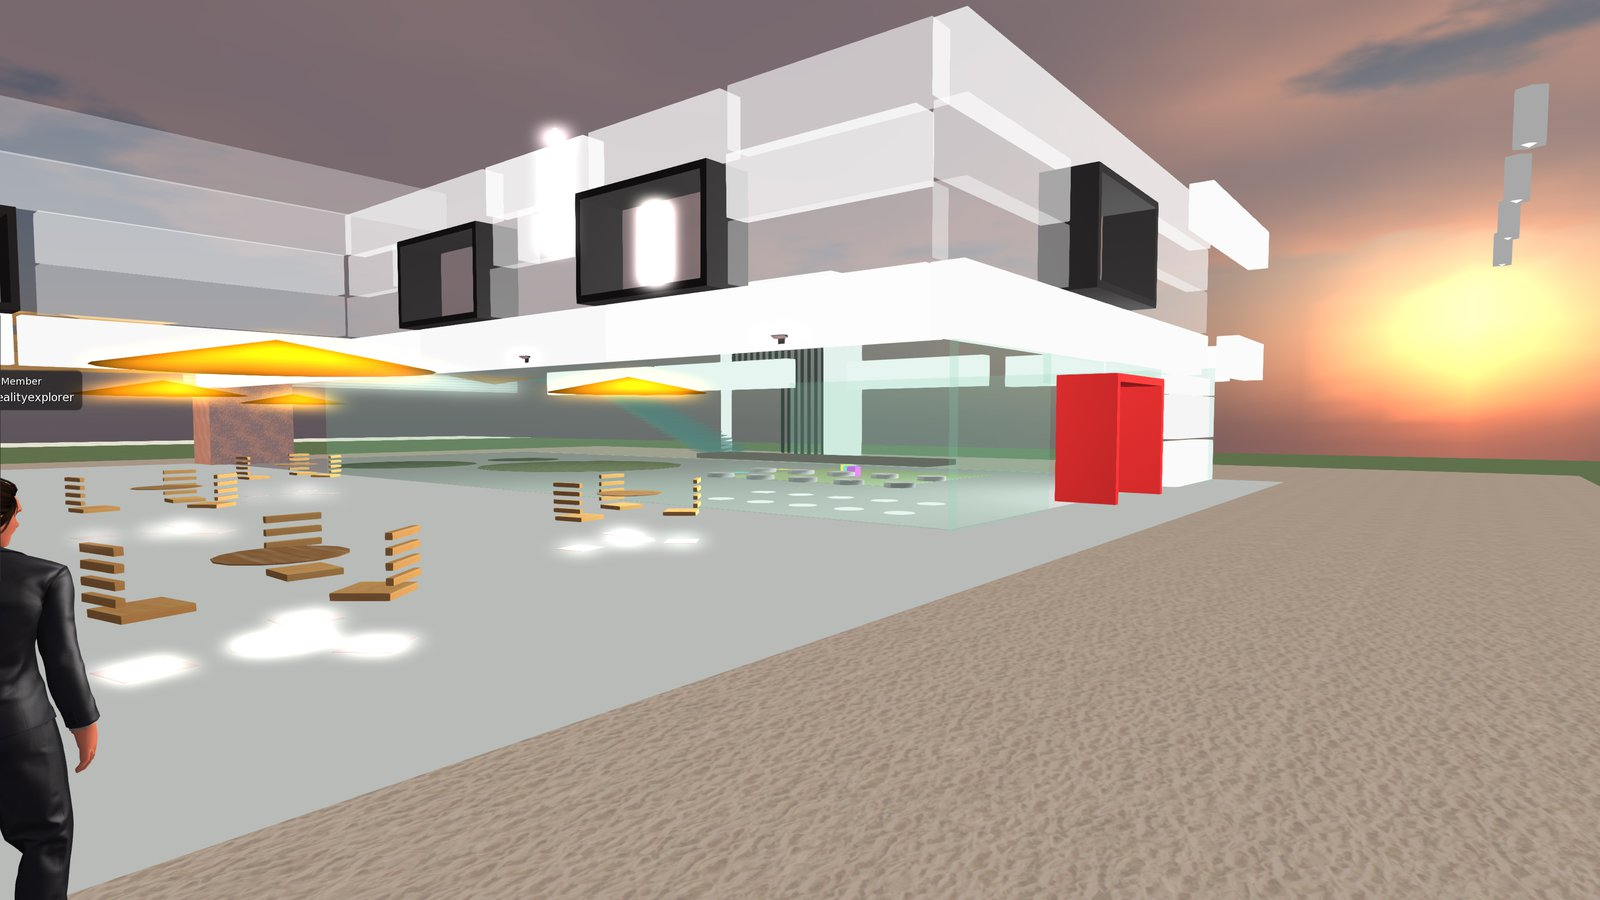 Hameetman Center in VIRTECH - a Virtual Campus and Community Space in virtual worlds